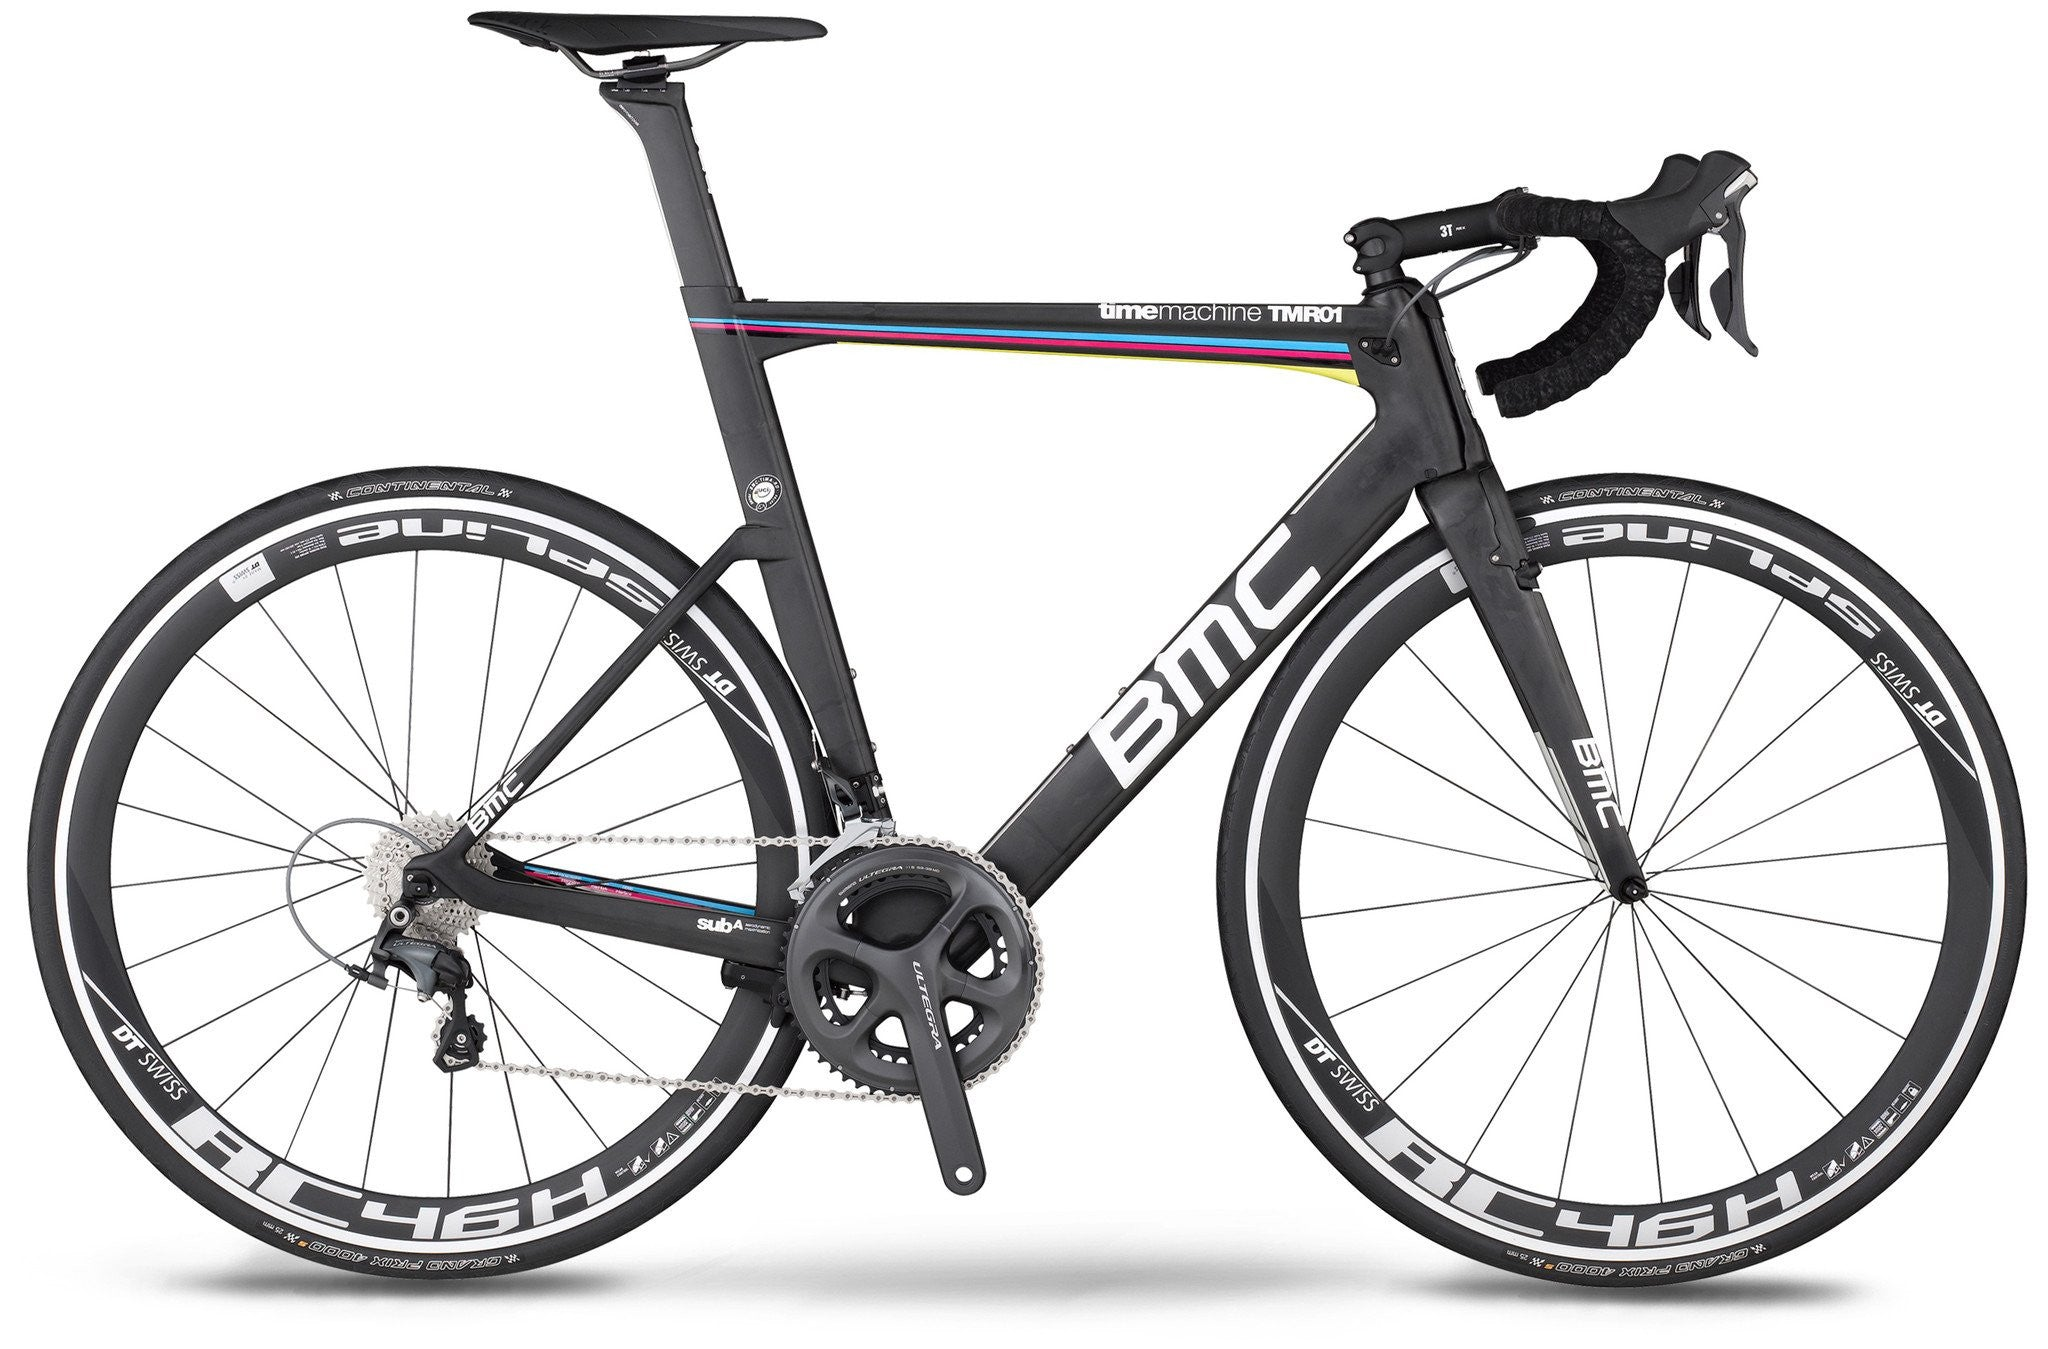 2014 bmc time machine tmr01 ultegra 11 speed